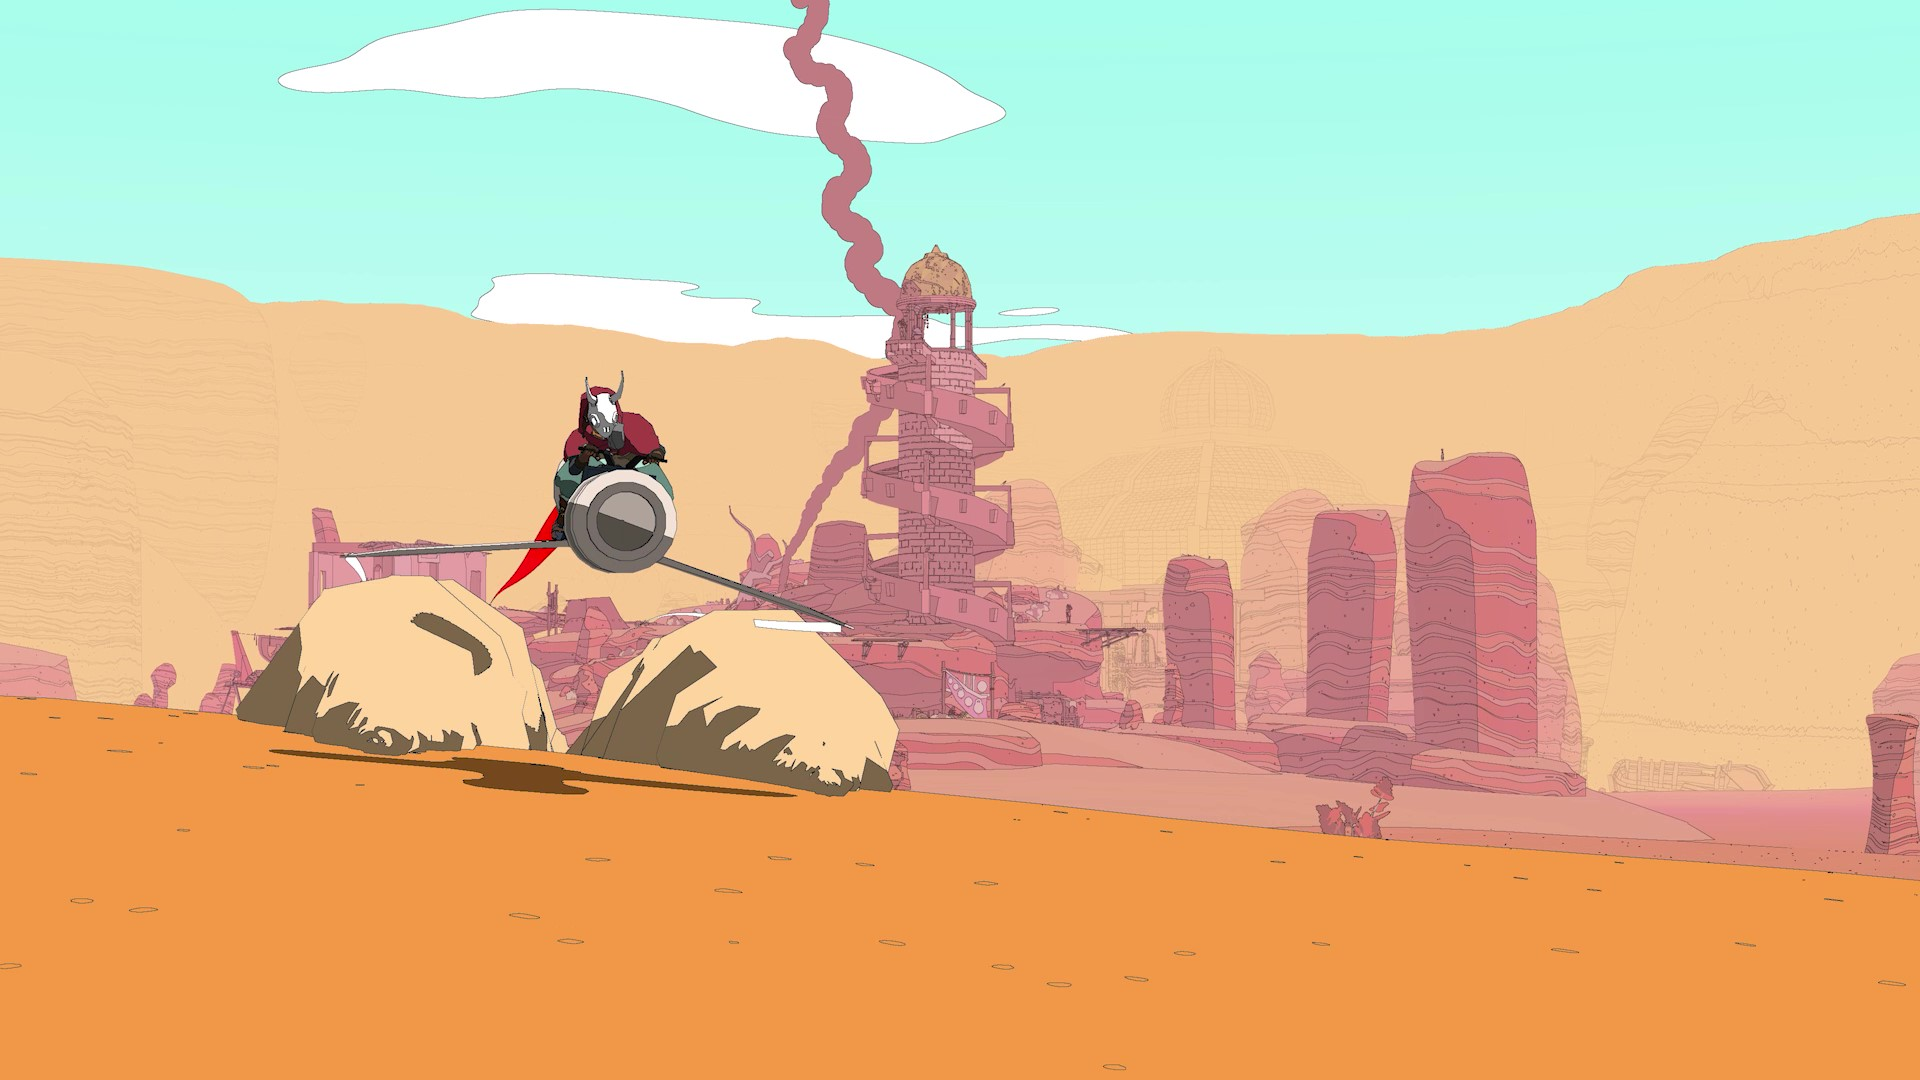 sable, the cloaked and masked character from sable, rides her hover bike in a desert